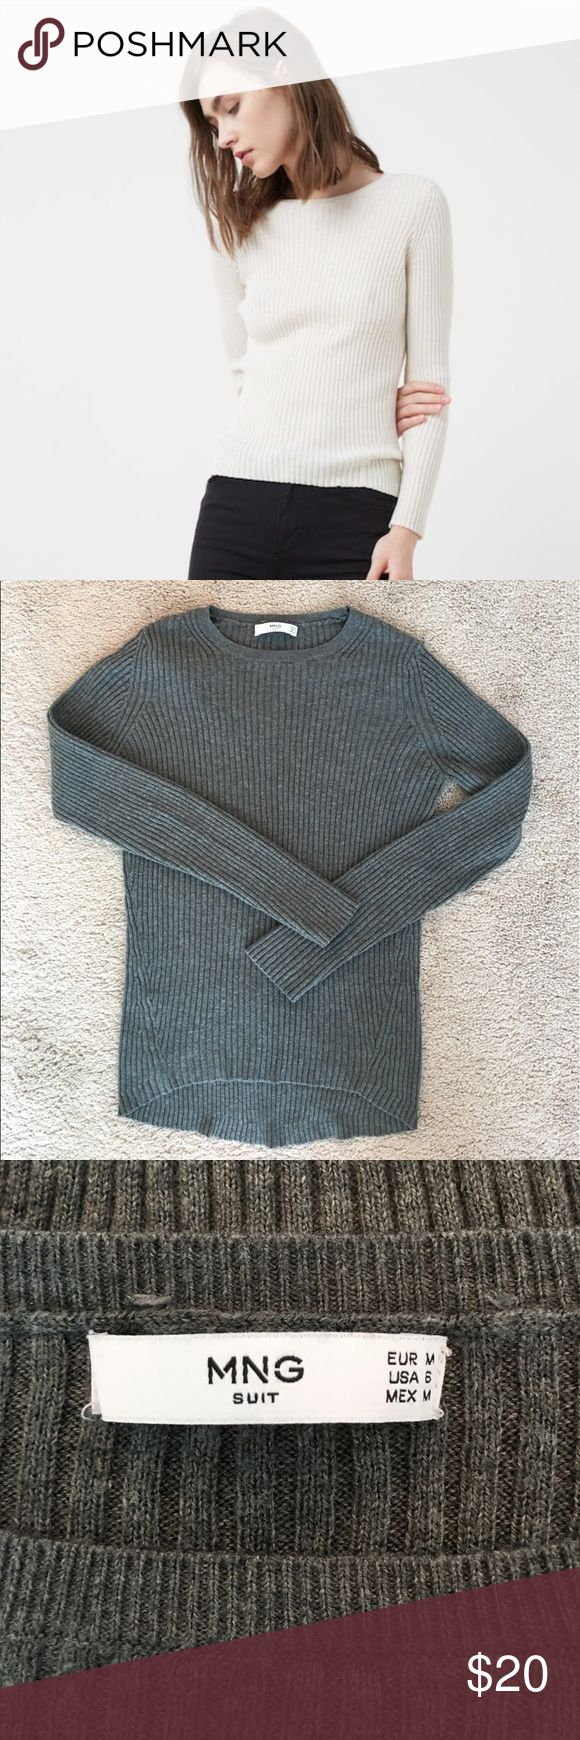 Mango Ribbed Sweater Practically new cotton blend sweater that is ribbed in detail. Snug fit and is true to size. A staple piece for any closet! Medium gray in color. Also sold out online. Mango Tops